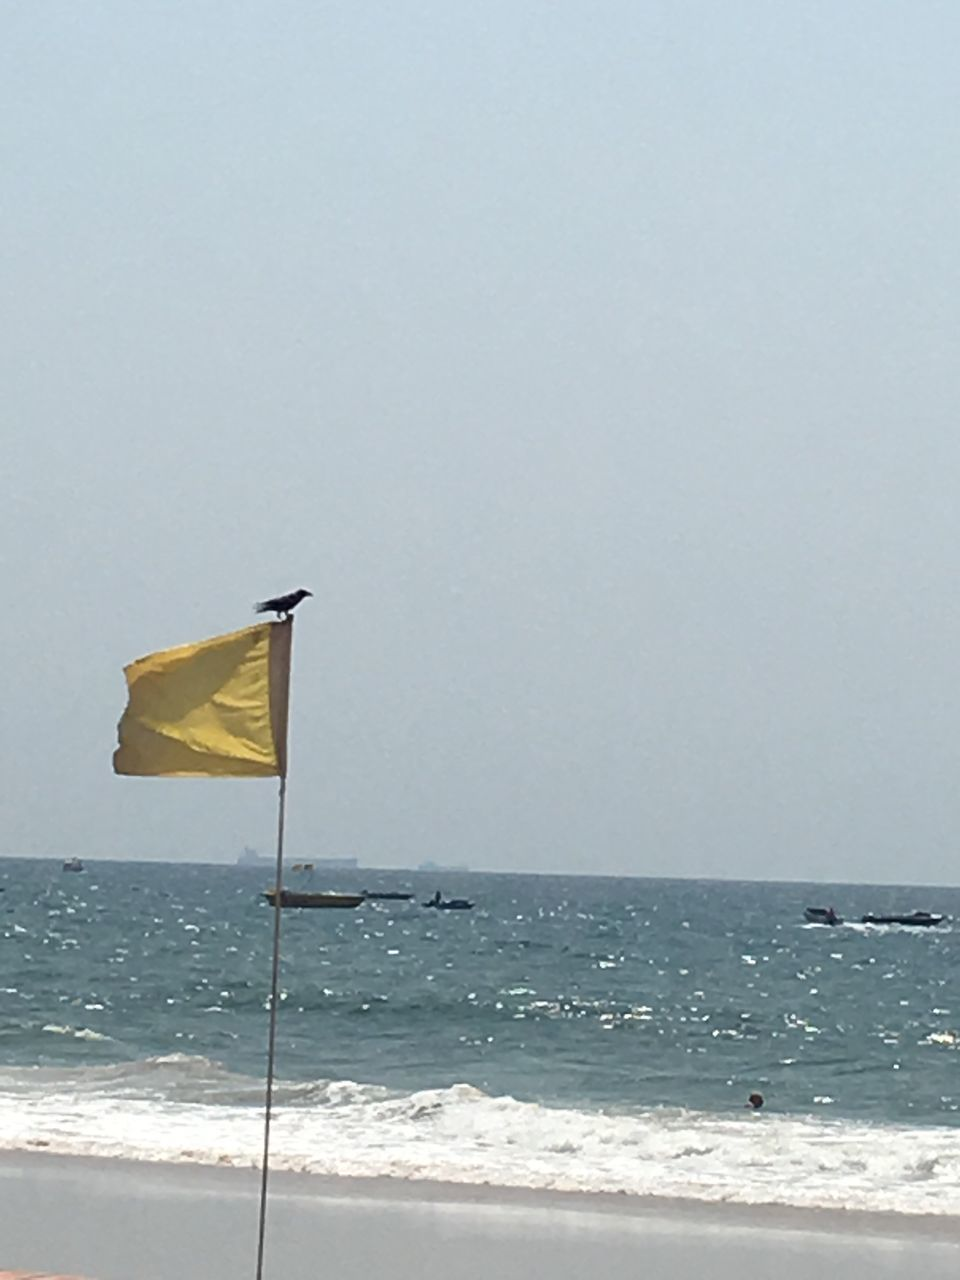 sea, flag, horizon over water, water, beauty in nature, scenics, nature, yellow, beach, clear sky, day, outdoors, no people, tranquility, sky